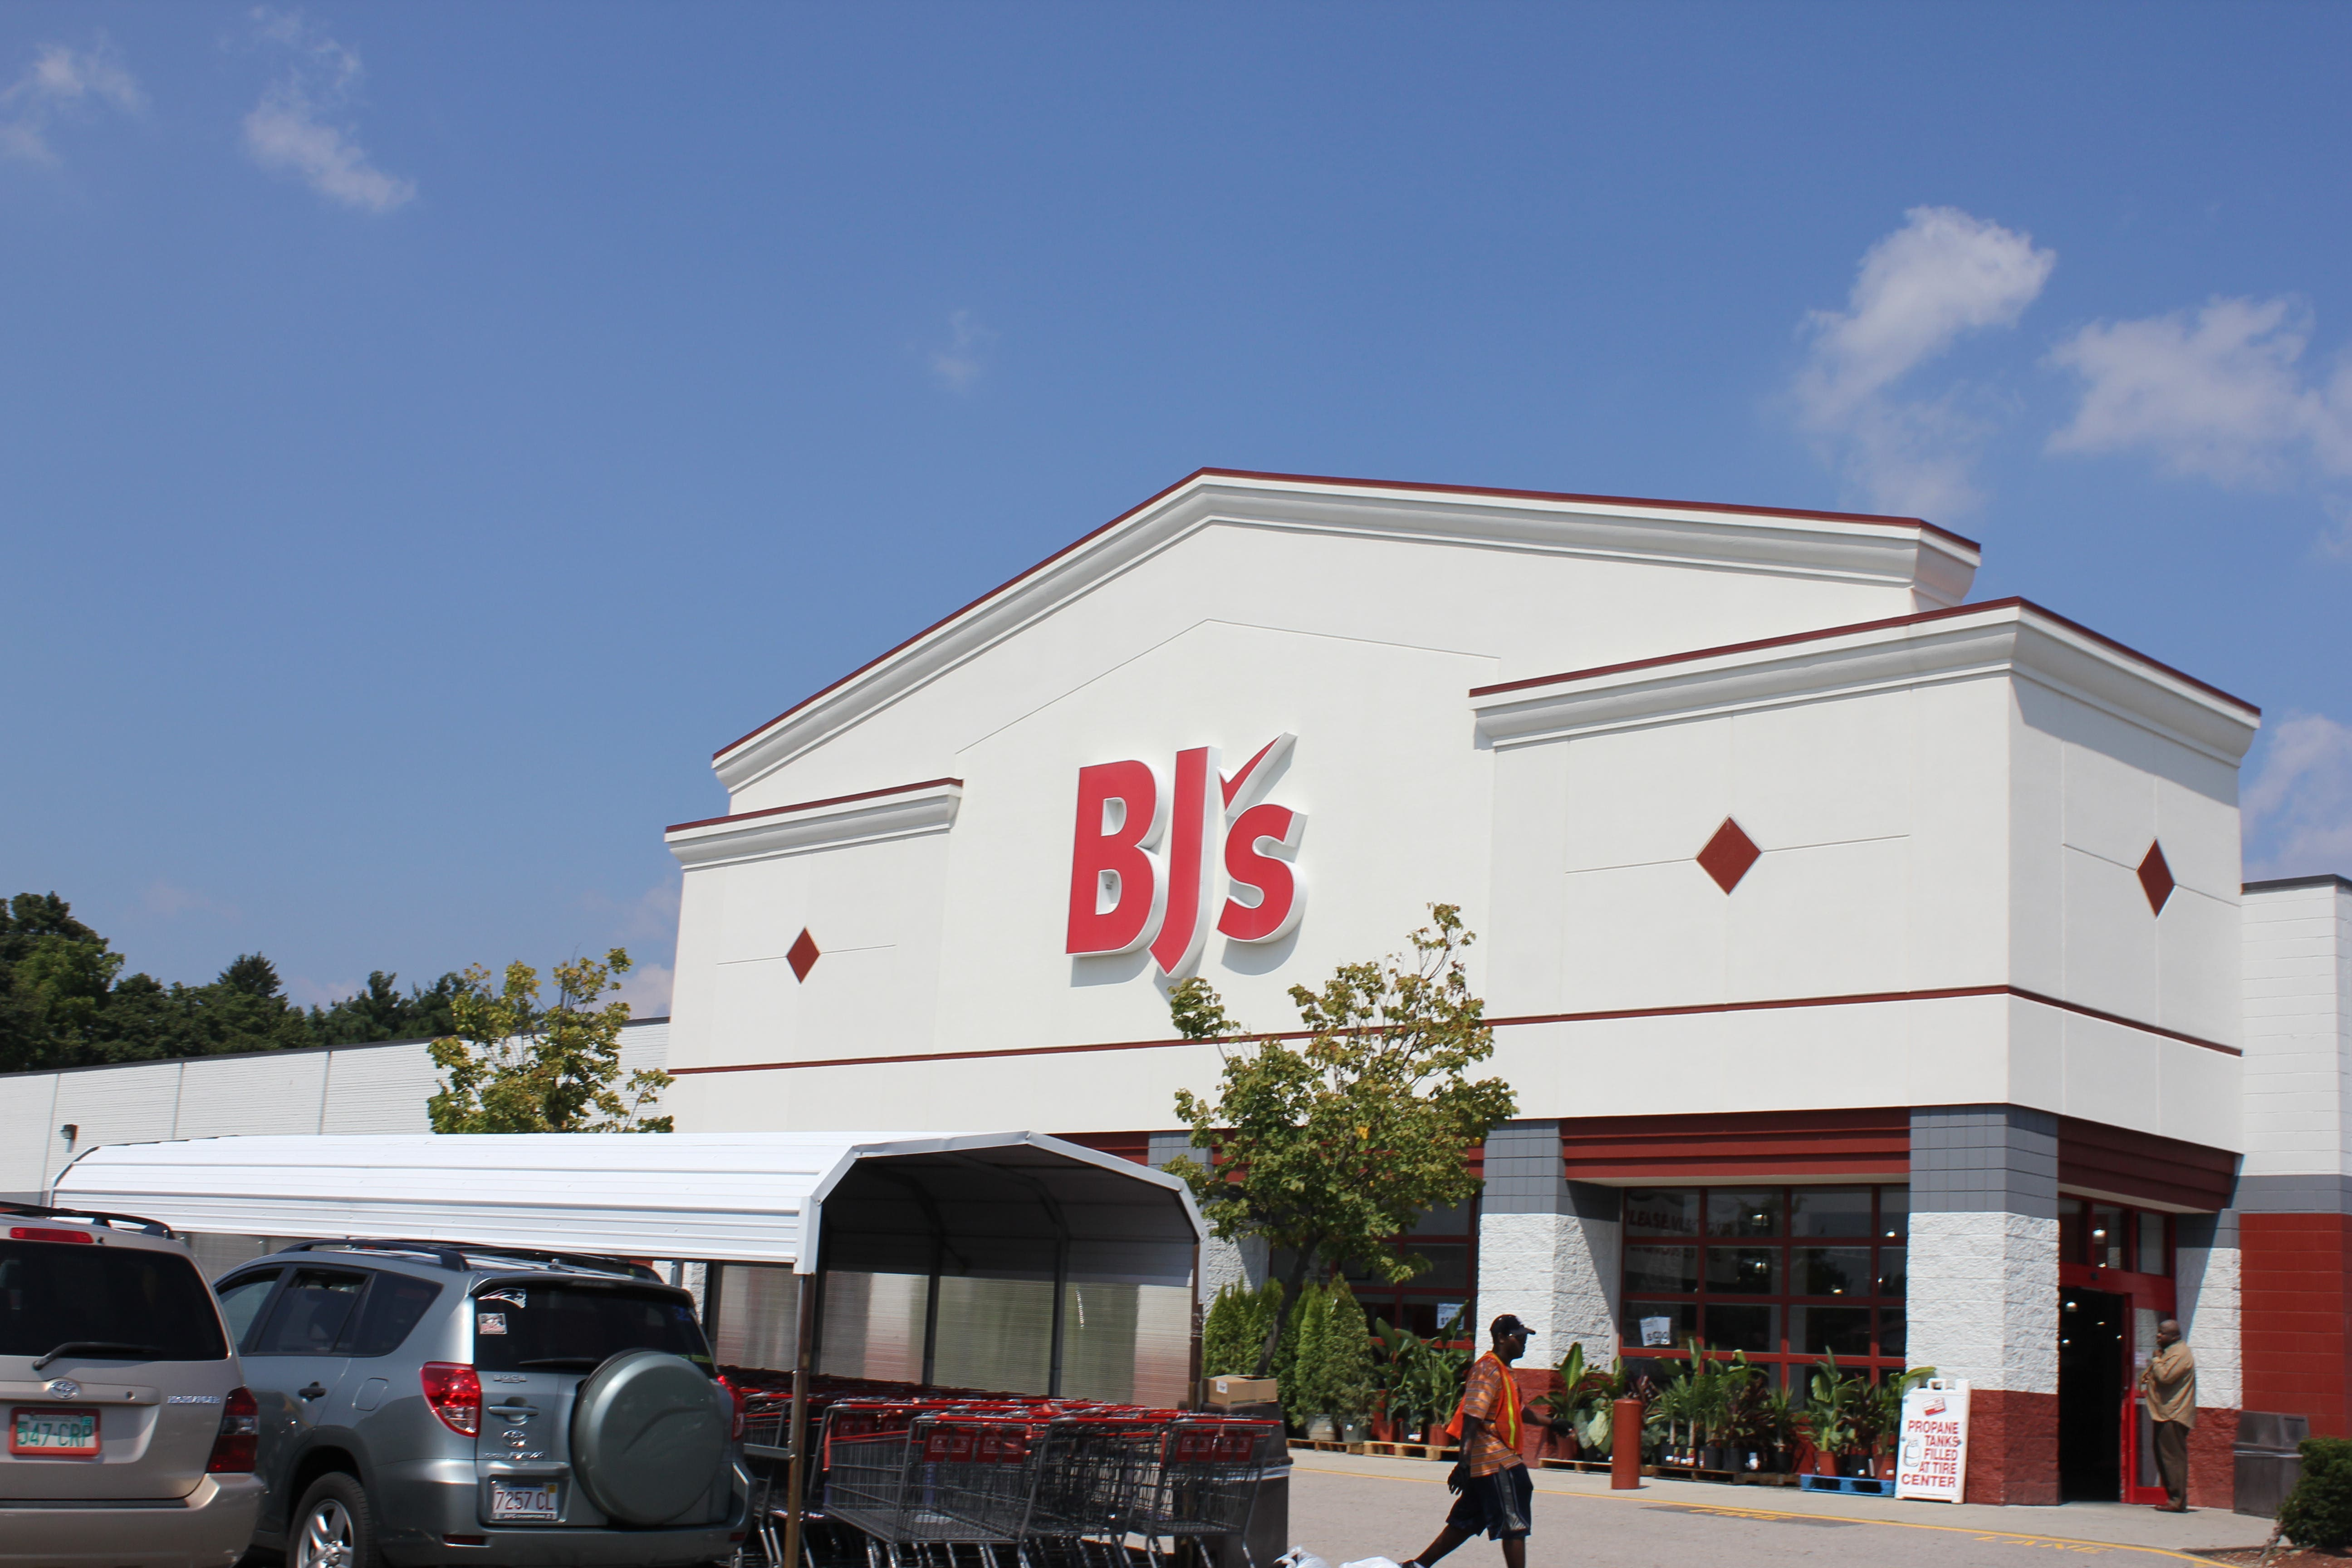 BJ's Cited for Allegedly Selling Liquor to Area Stores | Dedham, MA